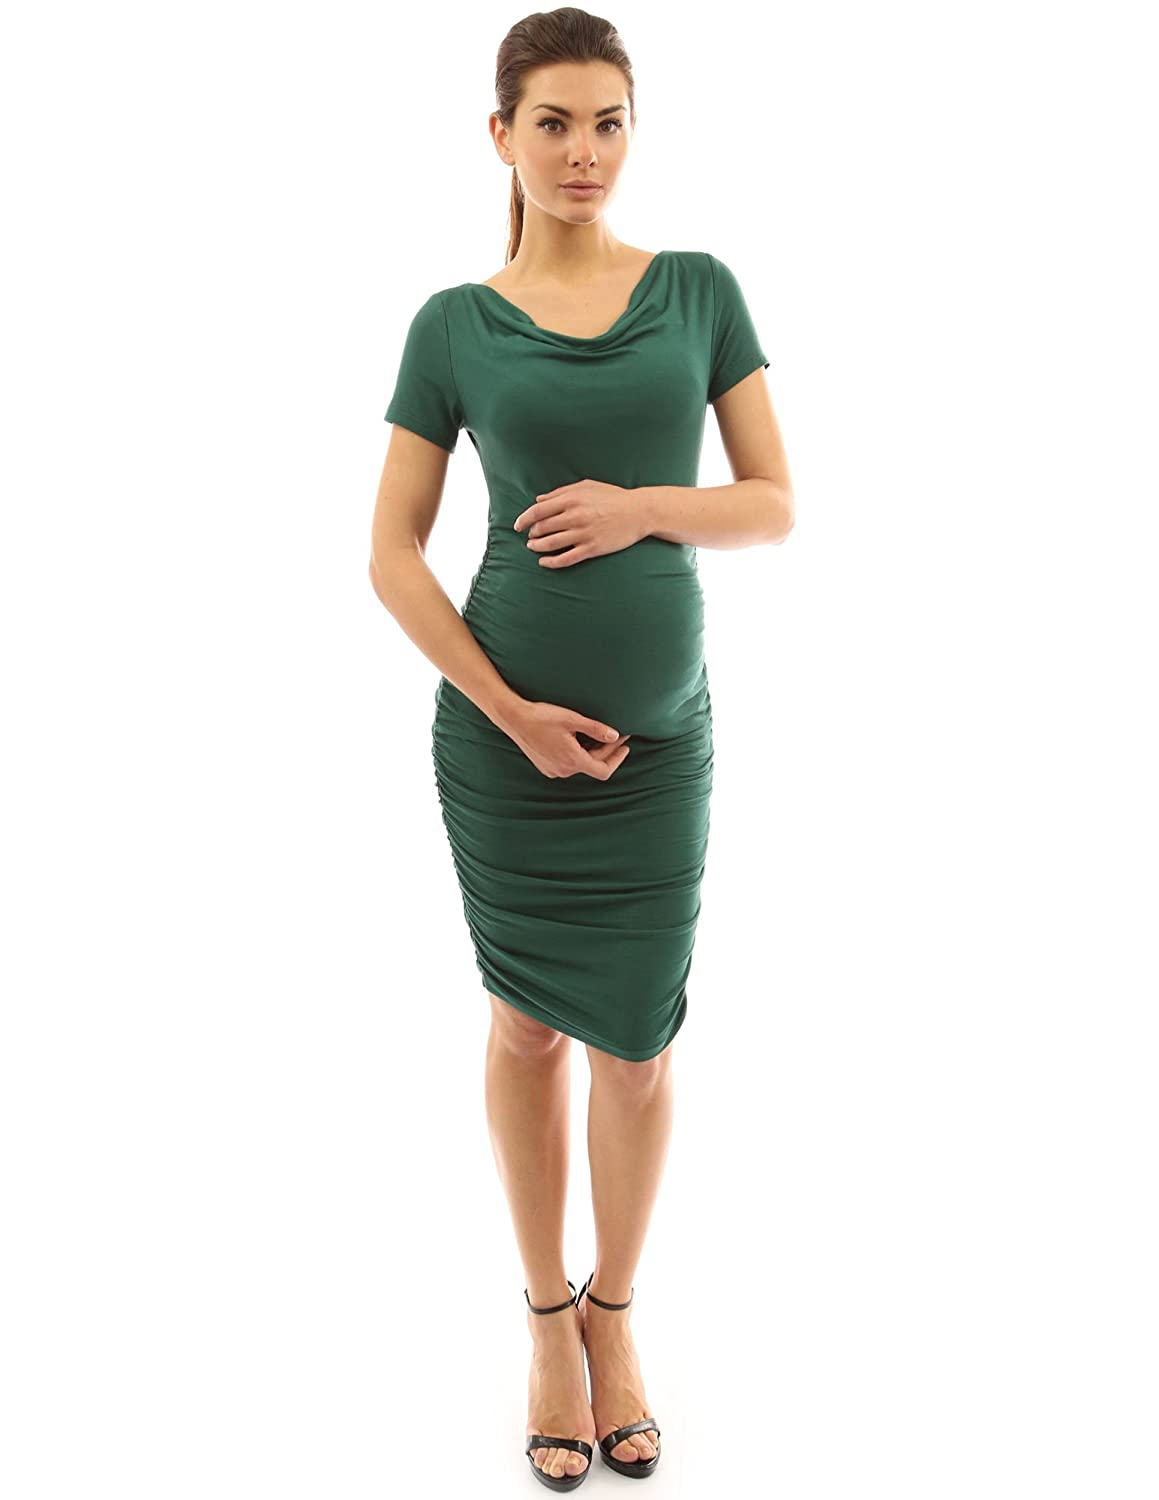 PattyBoutik Mama Cowl Neck Short Sleeve Maternity Dress